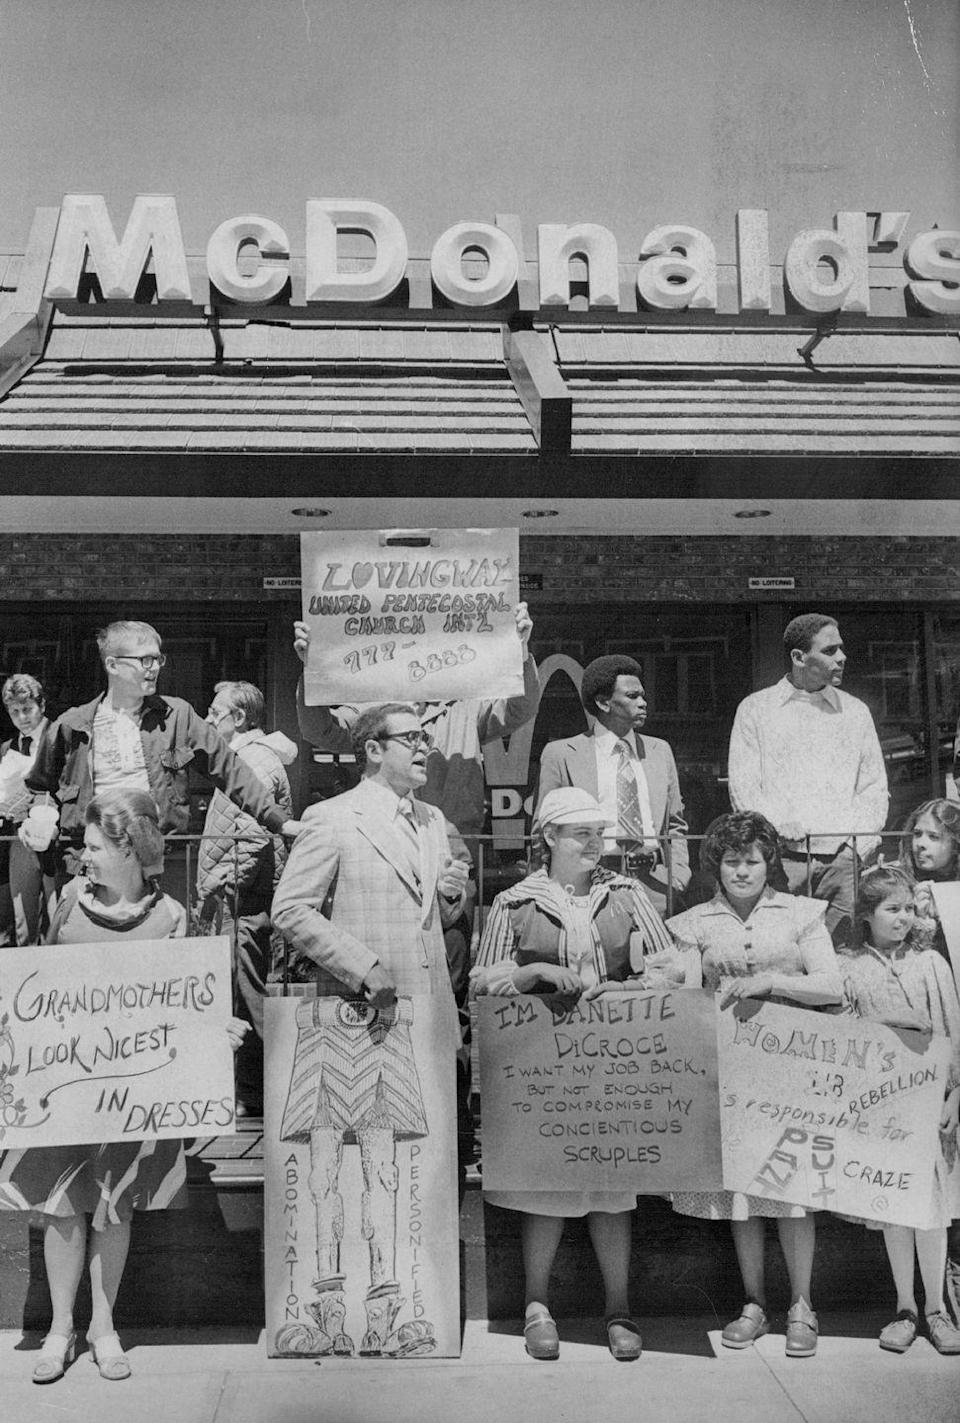 <p>Even McDonald's has had its fair share of conflict over the years. Members of Denver's Lovingway Inner City United Pentacostal Church protested the business when managers wouldn't allow a church member to work there wearing a dress. Danette DiCroce (pictured in the hat) was fired for not adhering to their pants-only dress code, only to be rehired soon after. Today, the typical McDonald's uniform still consists of slacks and a shirt. </p>